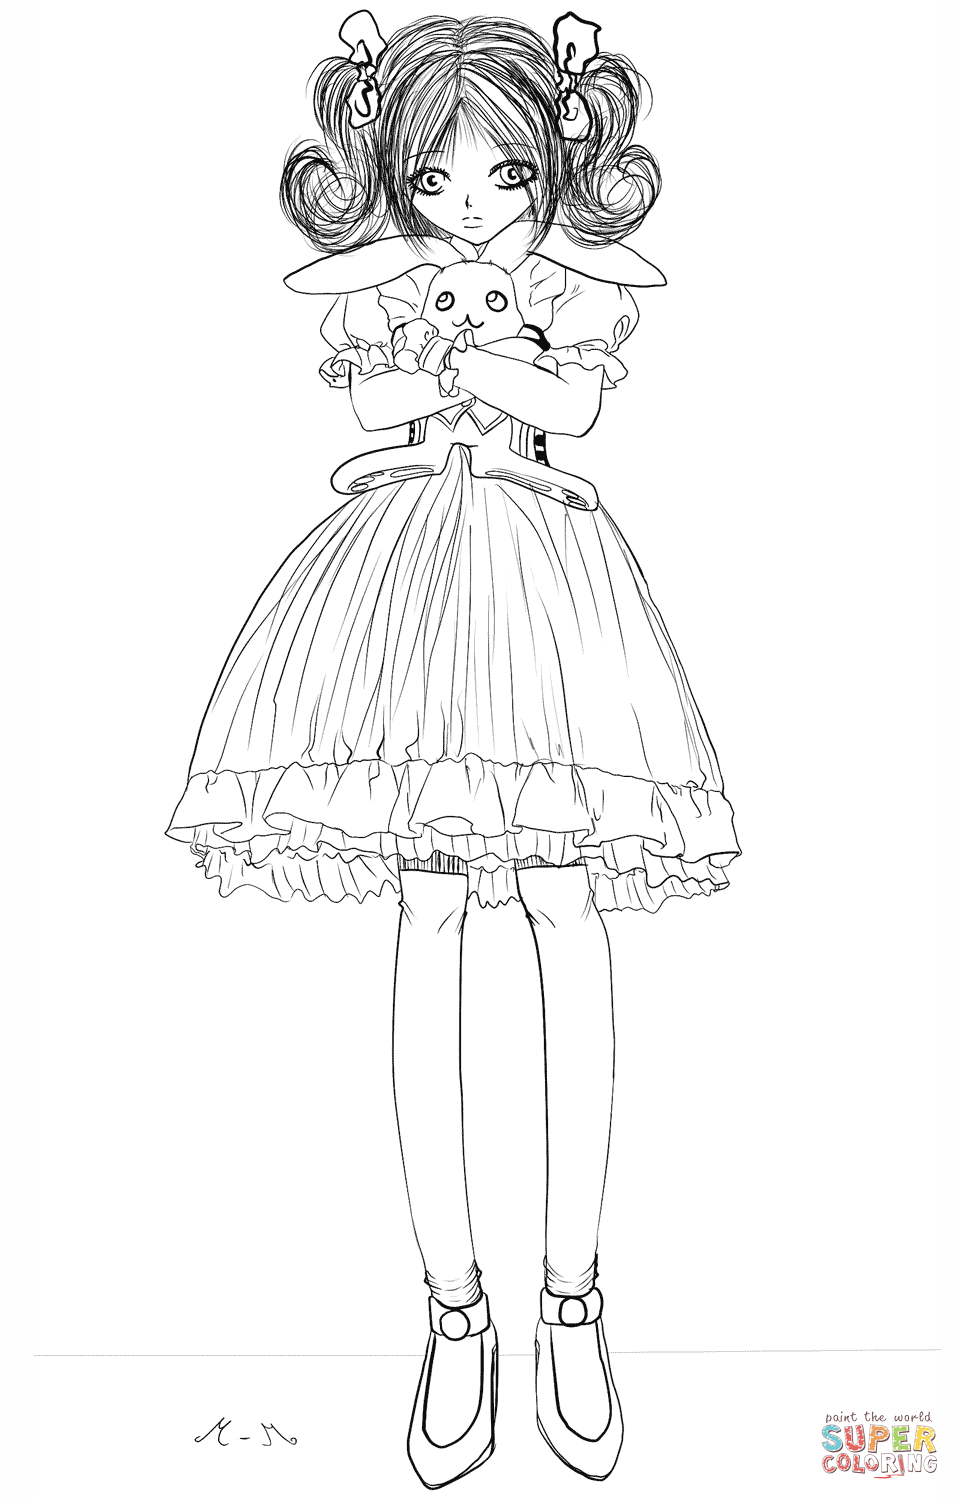 bunny girl coloring page girl with bunny flowers coloring page people coloring girl coloring bunny page